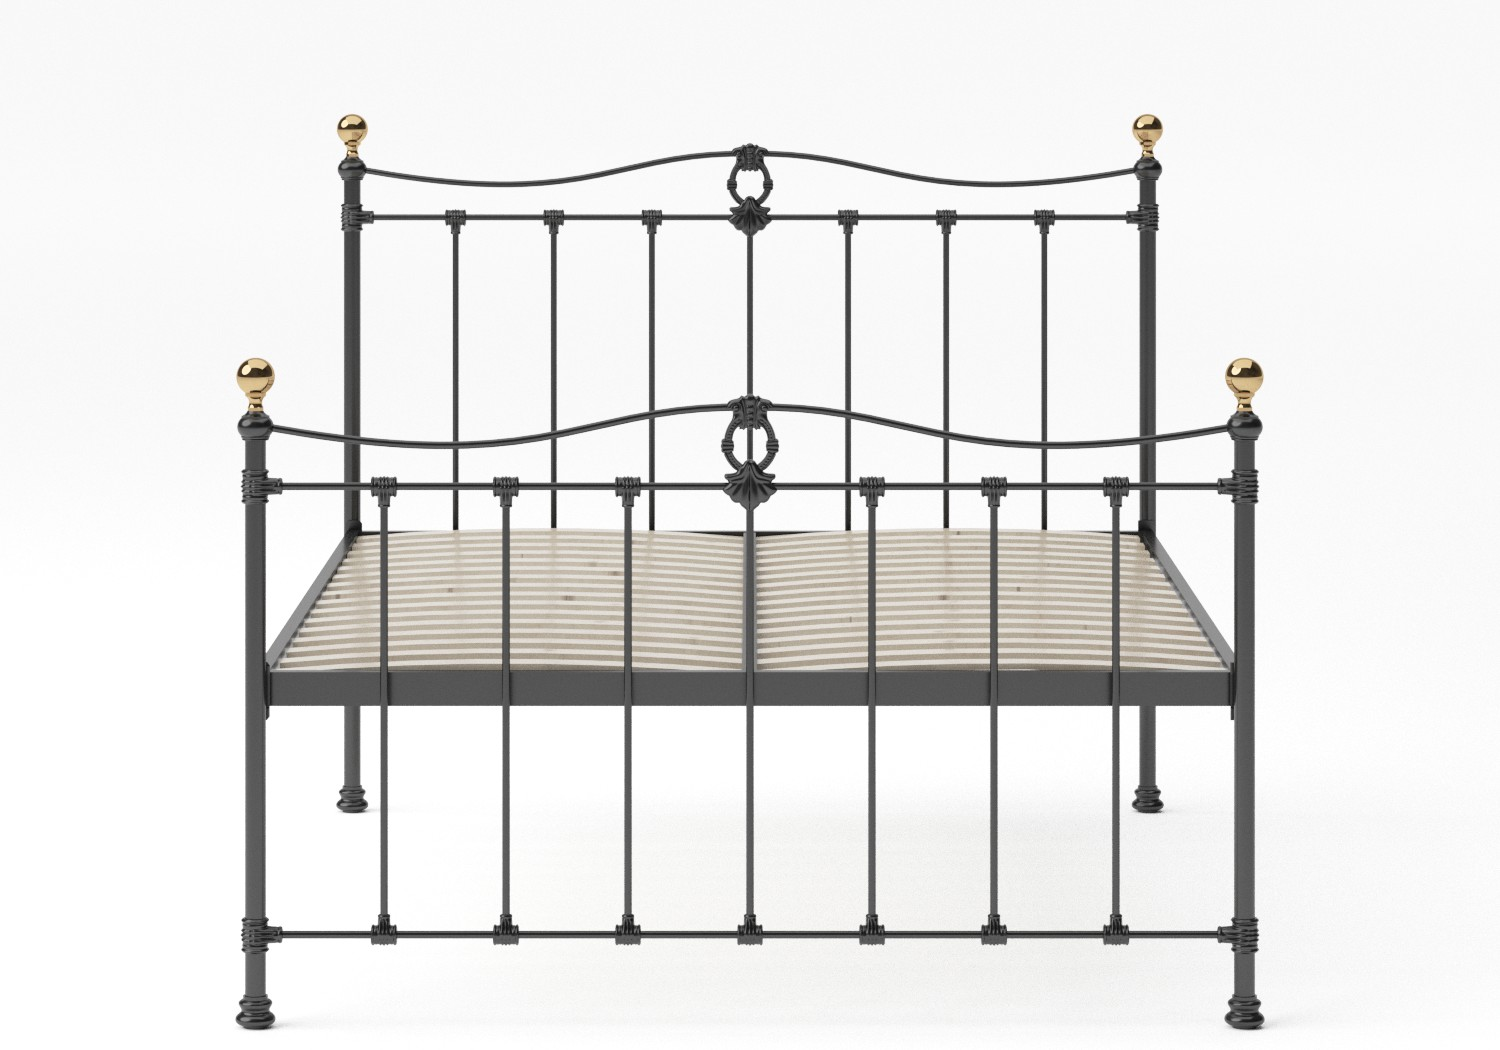 Tulsk Iron/Metal Bed in Satin Black with Brass details shown with slatted base